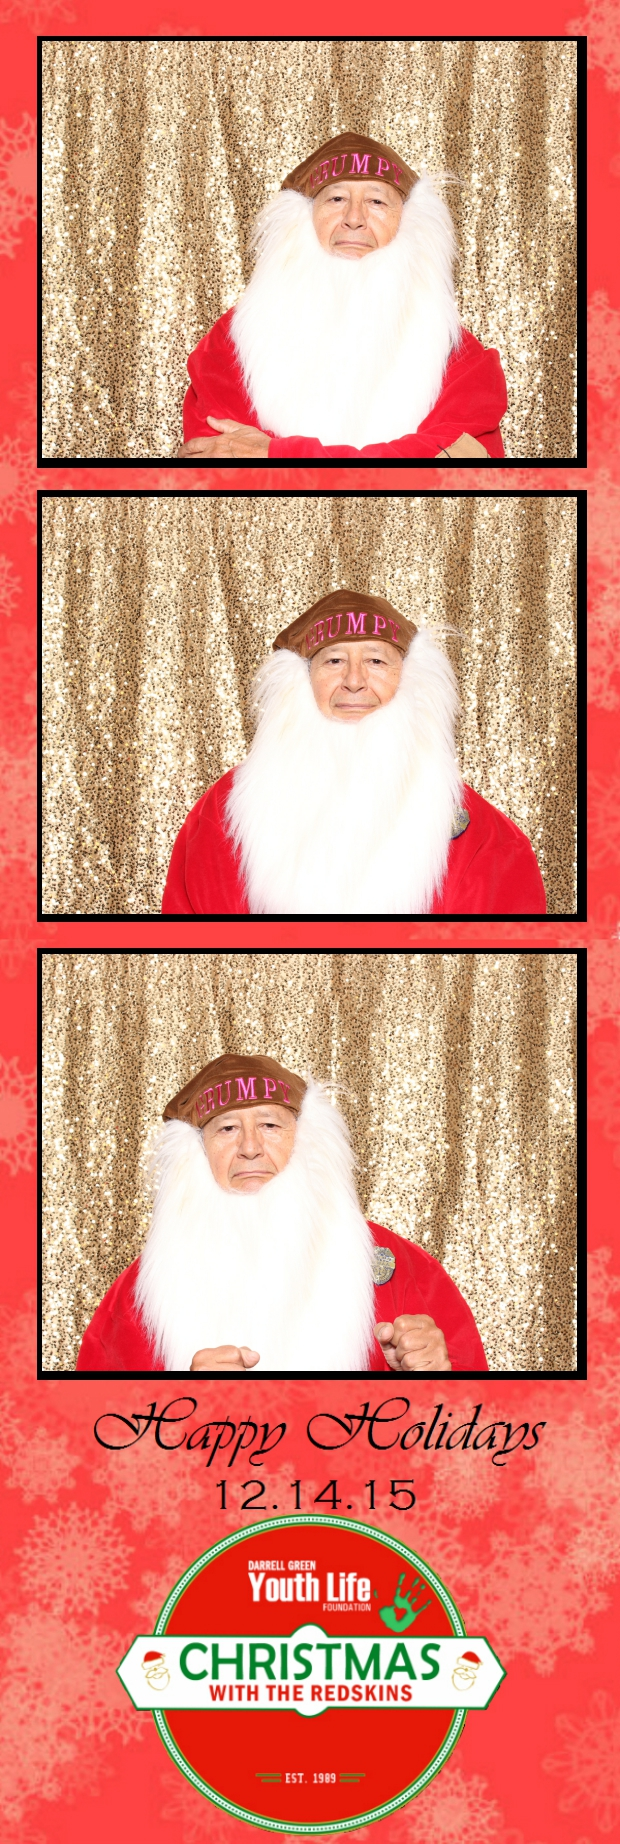 Guest House Events Photo Booth DGYLF Strips (1).jpg